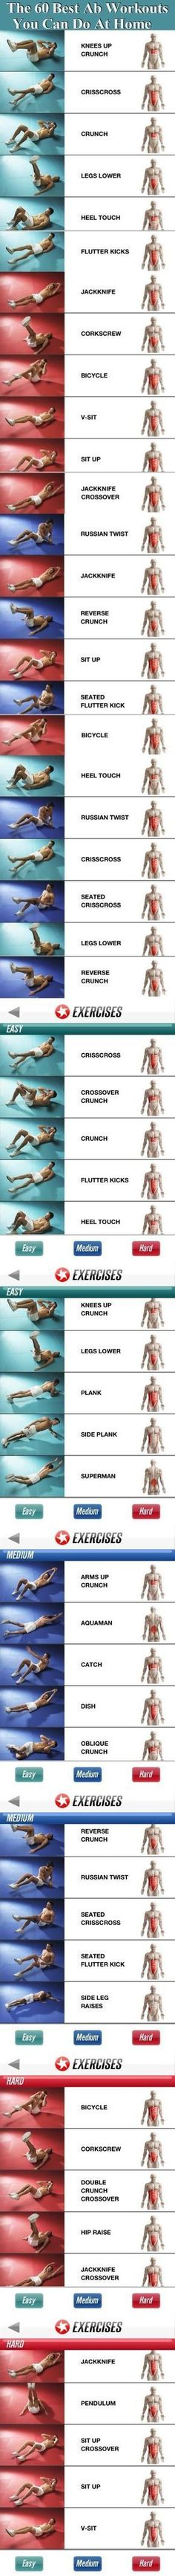 The 60 Best Ab Workouts You Can Do From Home Pictures Photos and Images for Fa